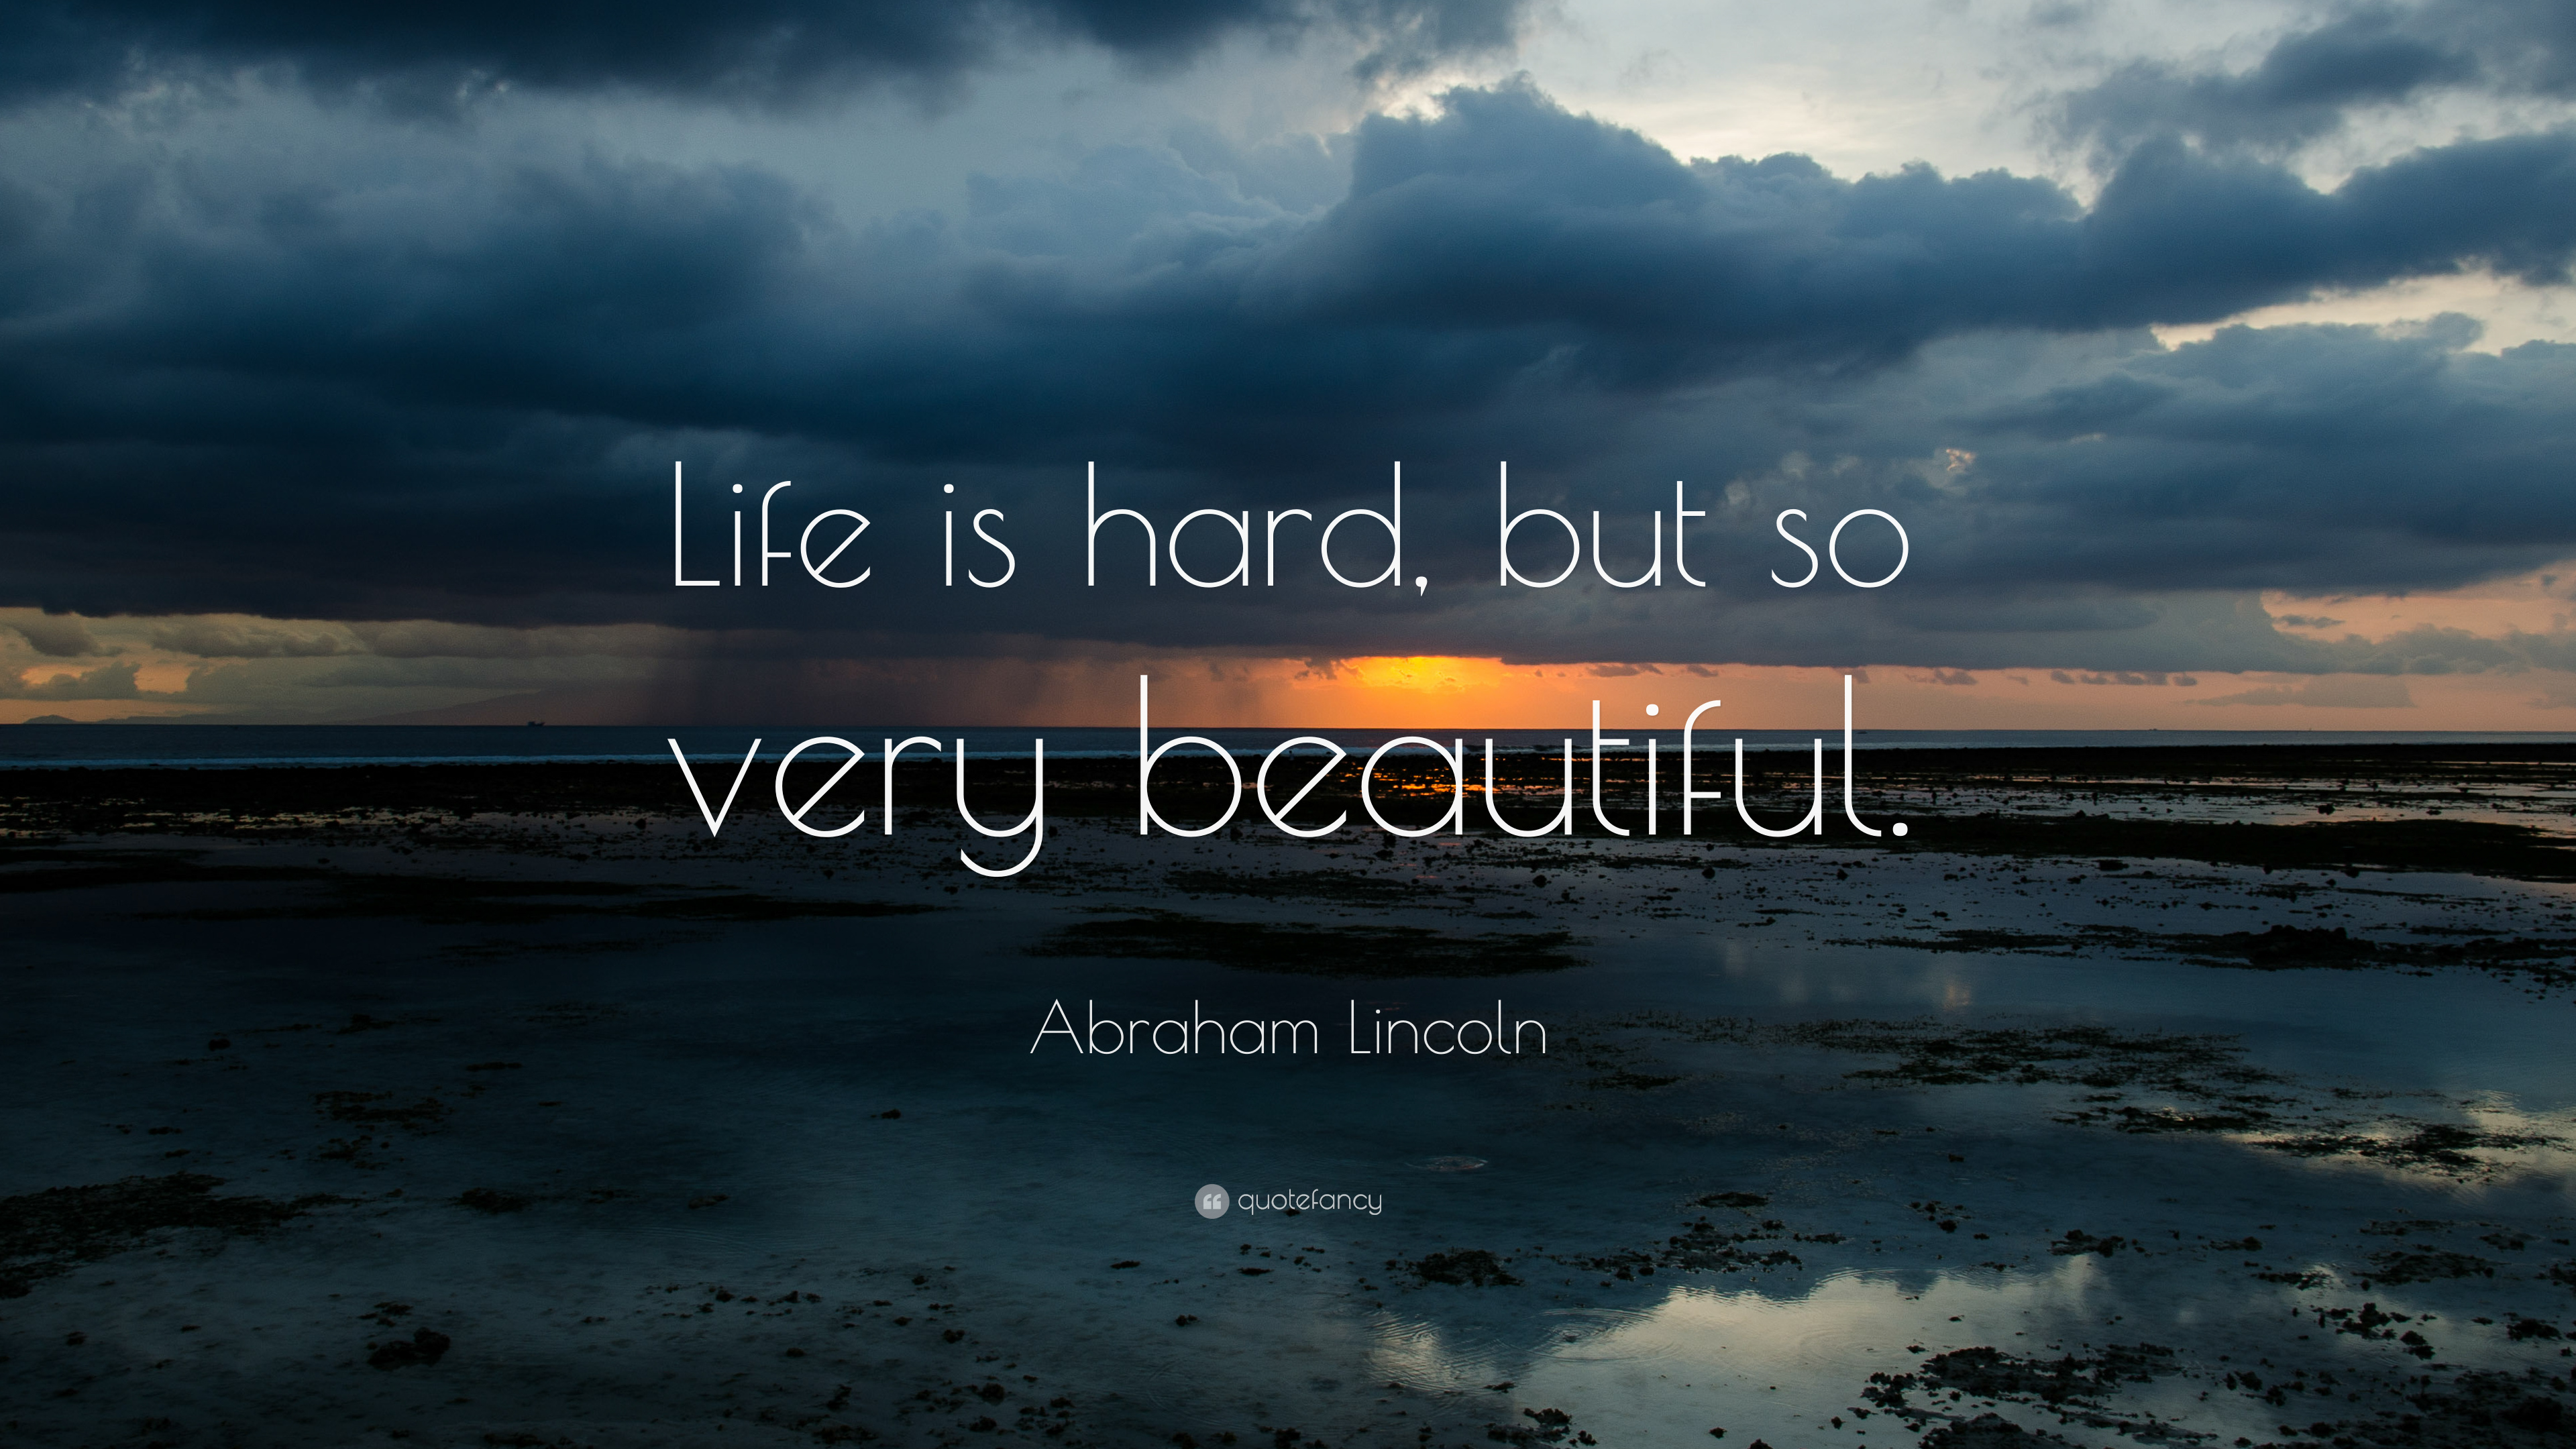 Abraham Lincoln Quotes 500 Wallpapers Quotefancy